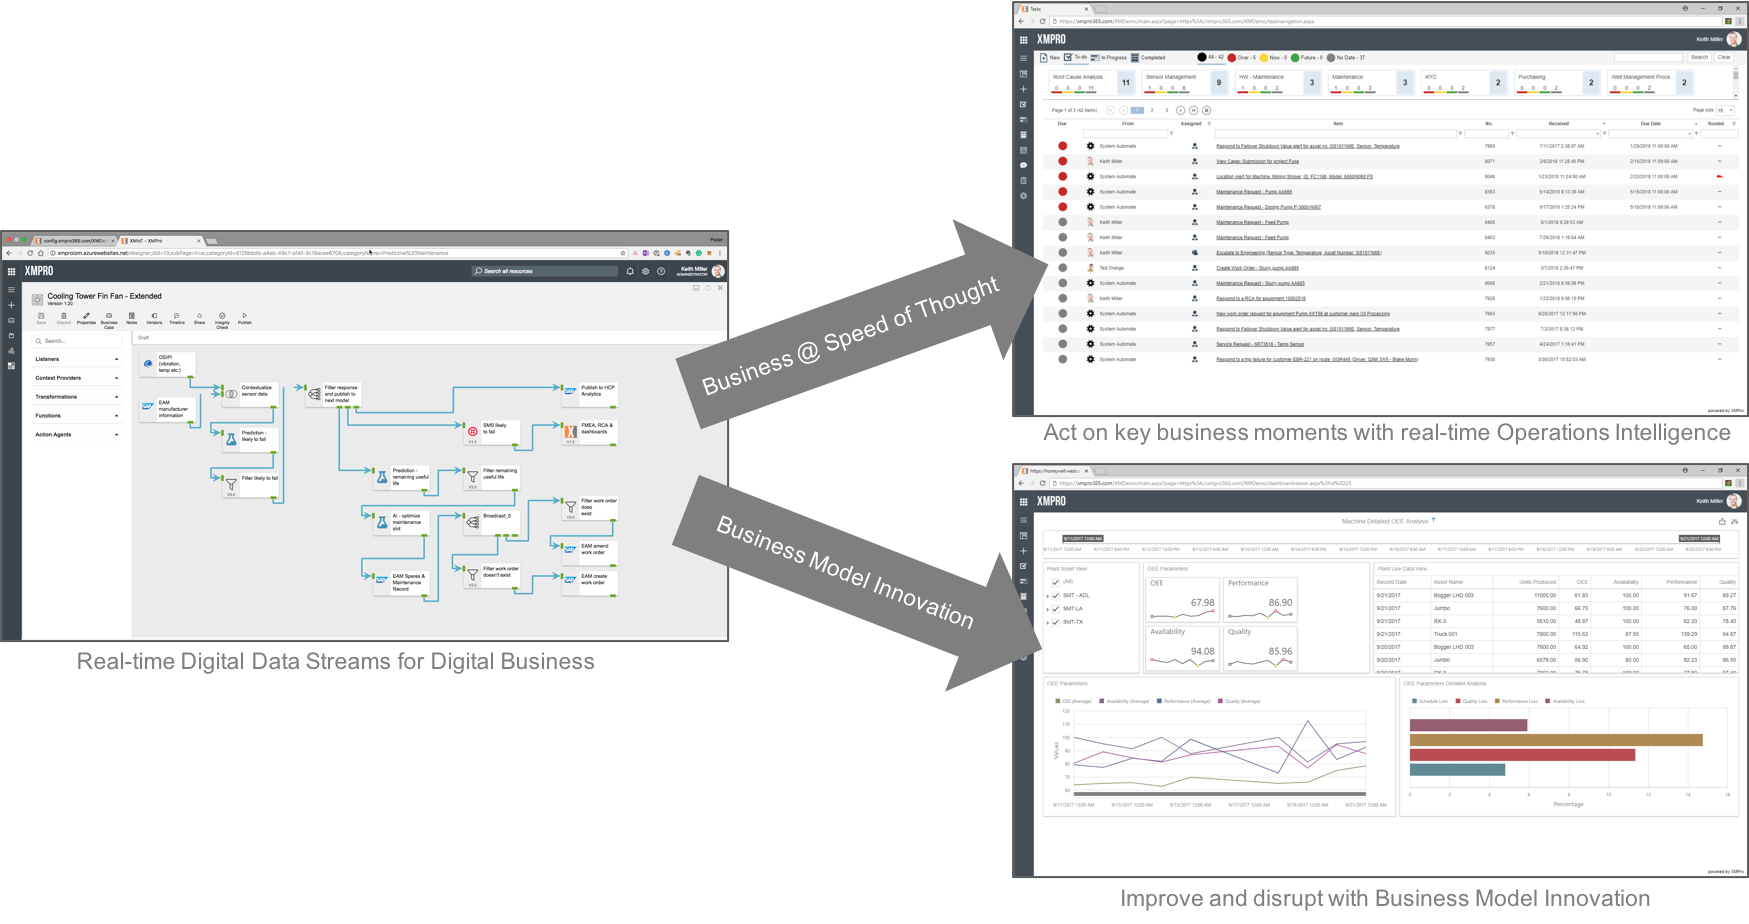 Real Time Data Streams for Digital Business